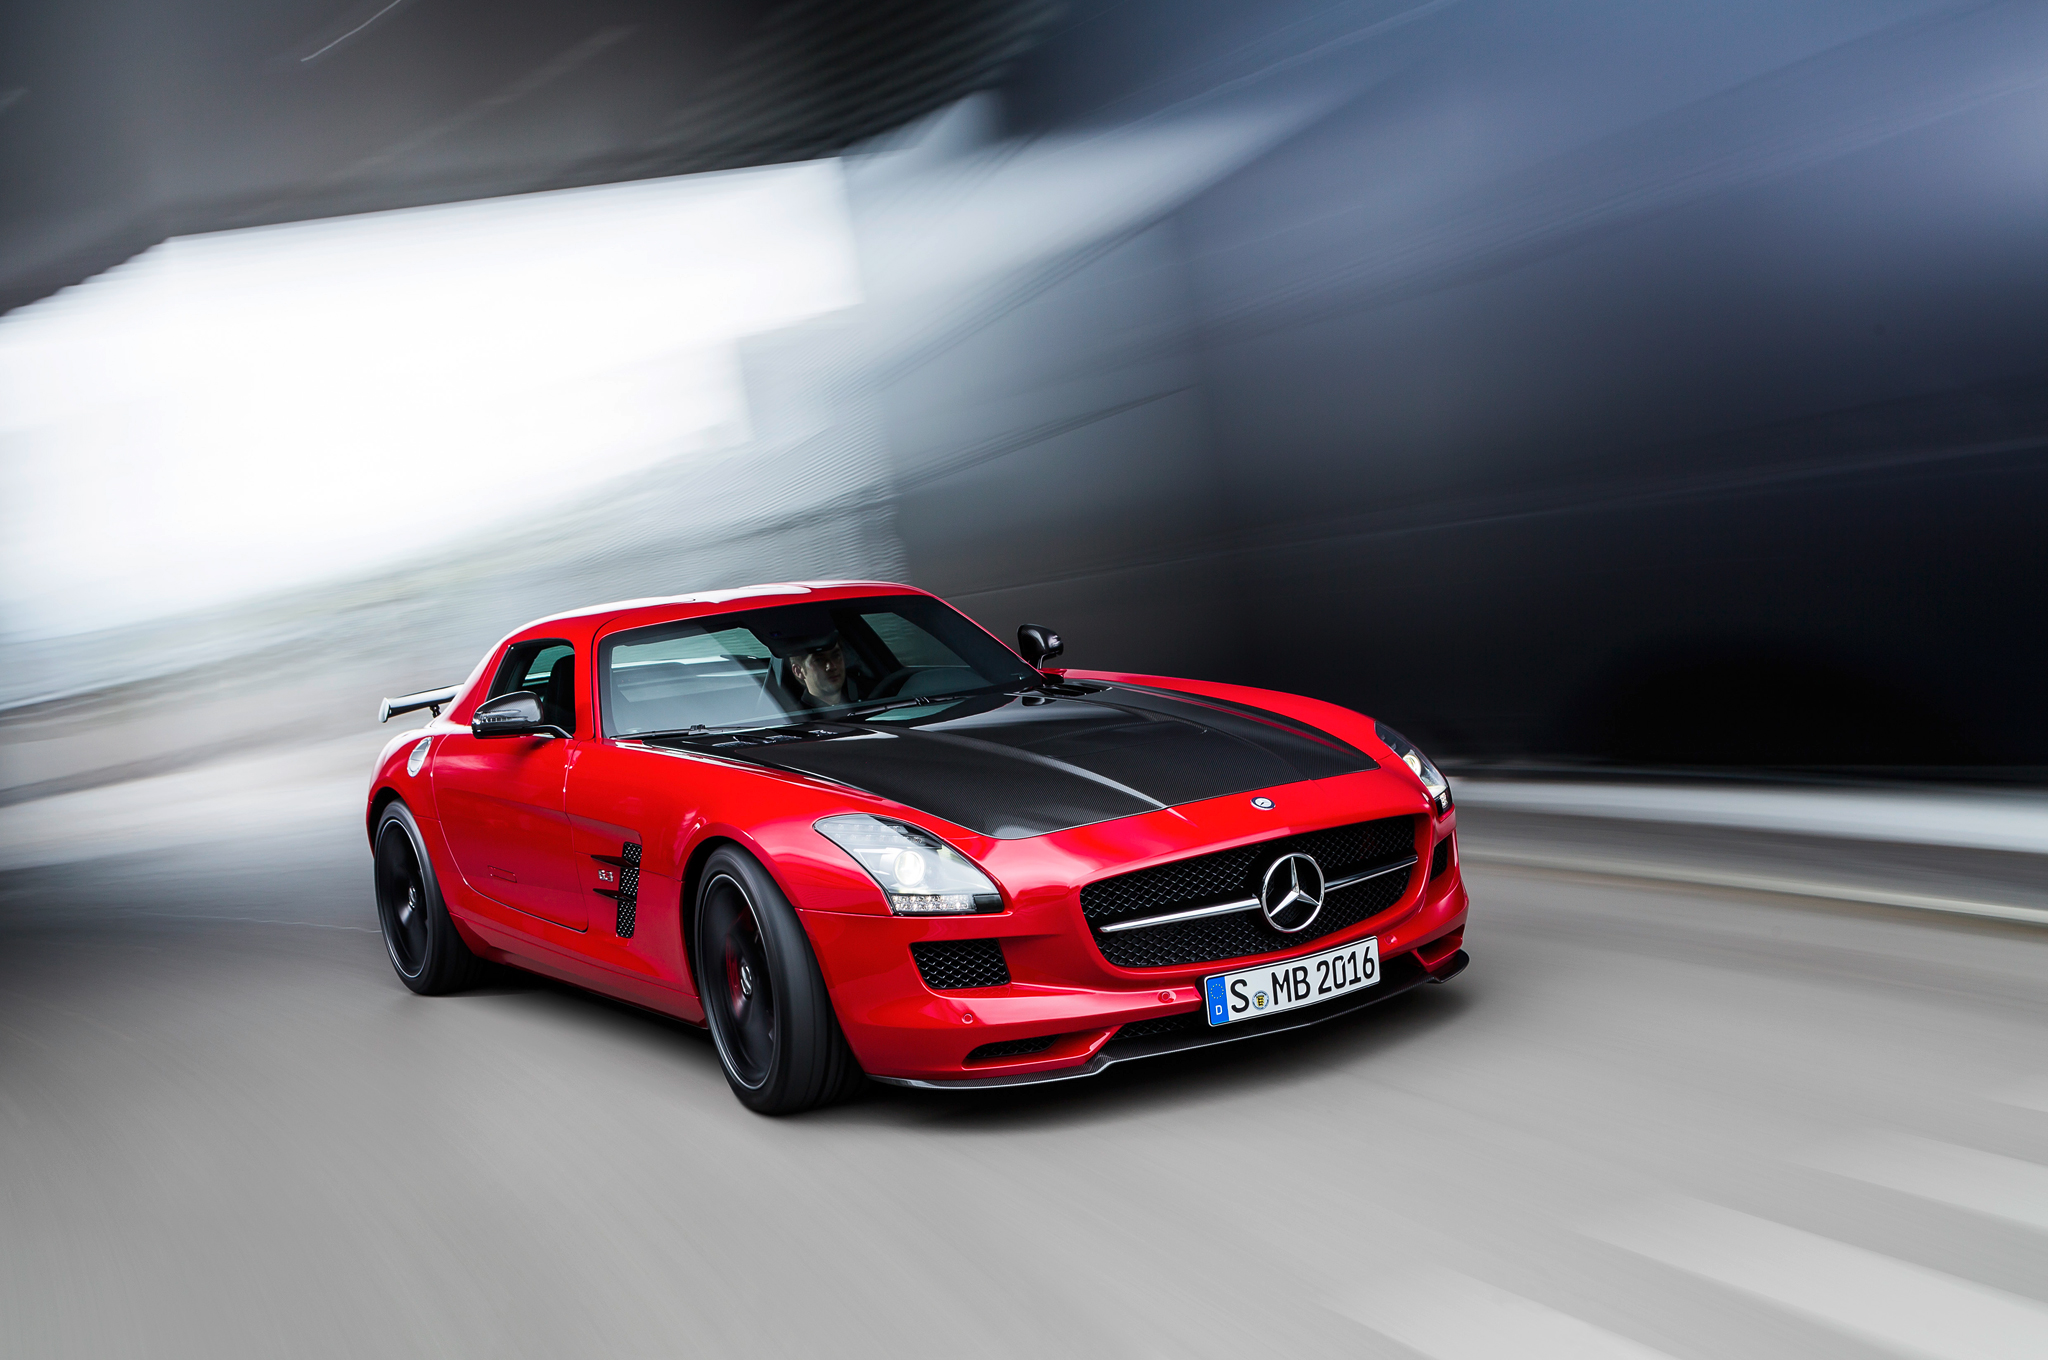 2015 Mercedes-Benz Sls Amg Gt Final Edition #2